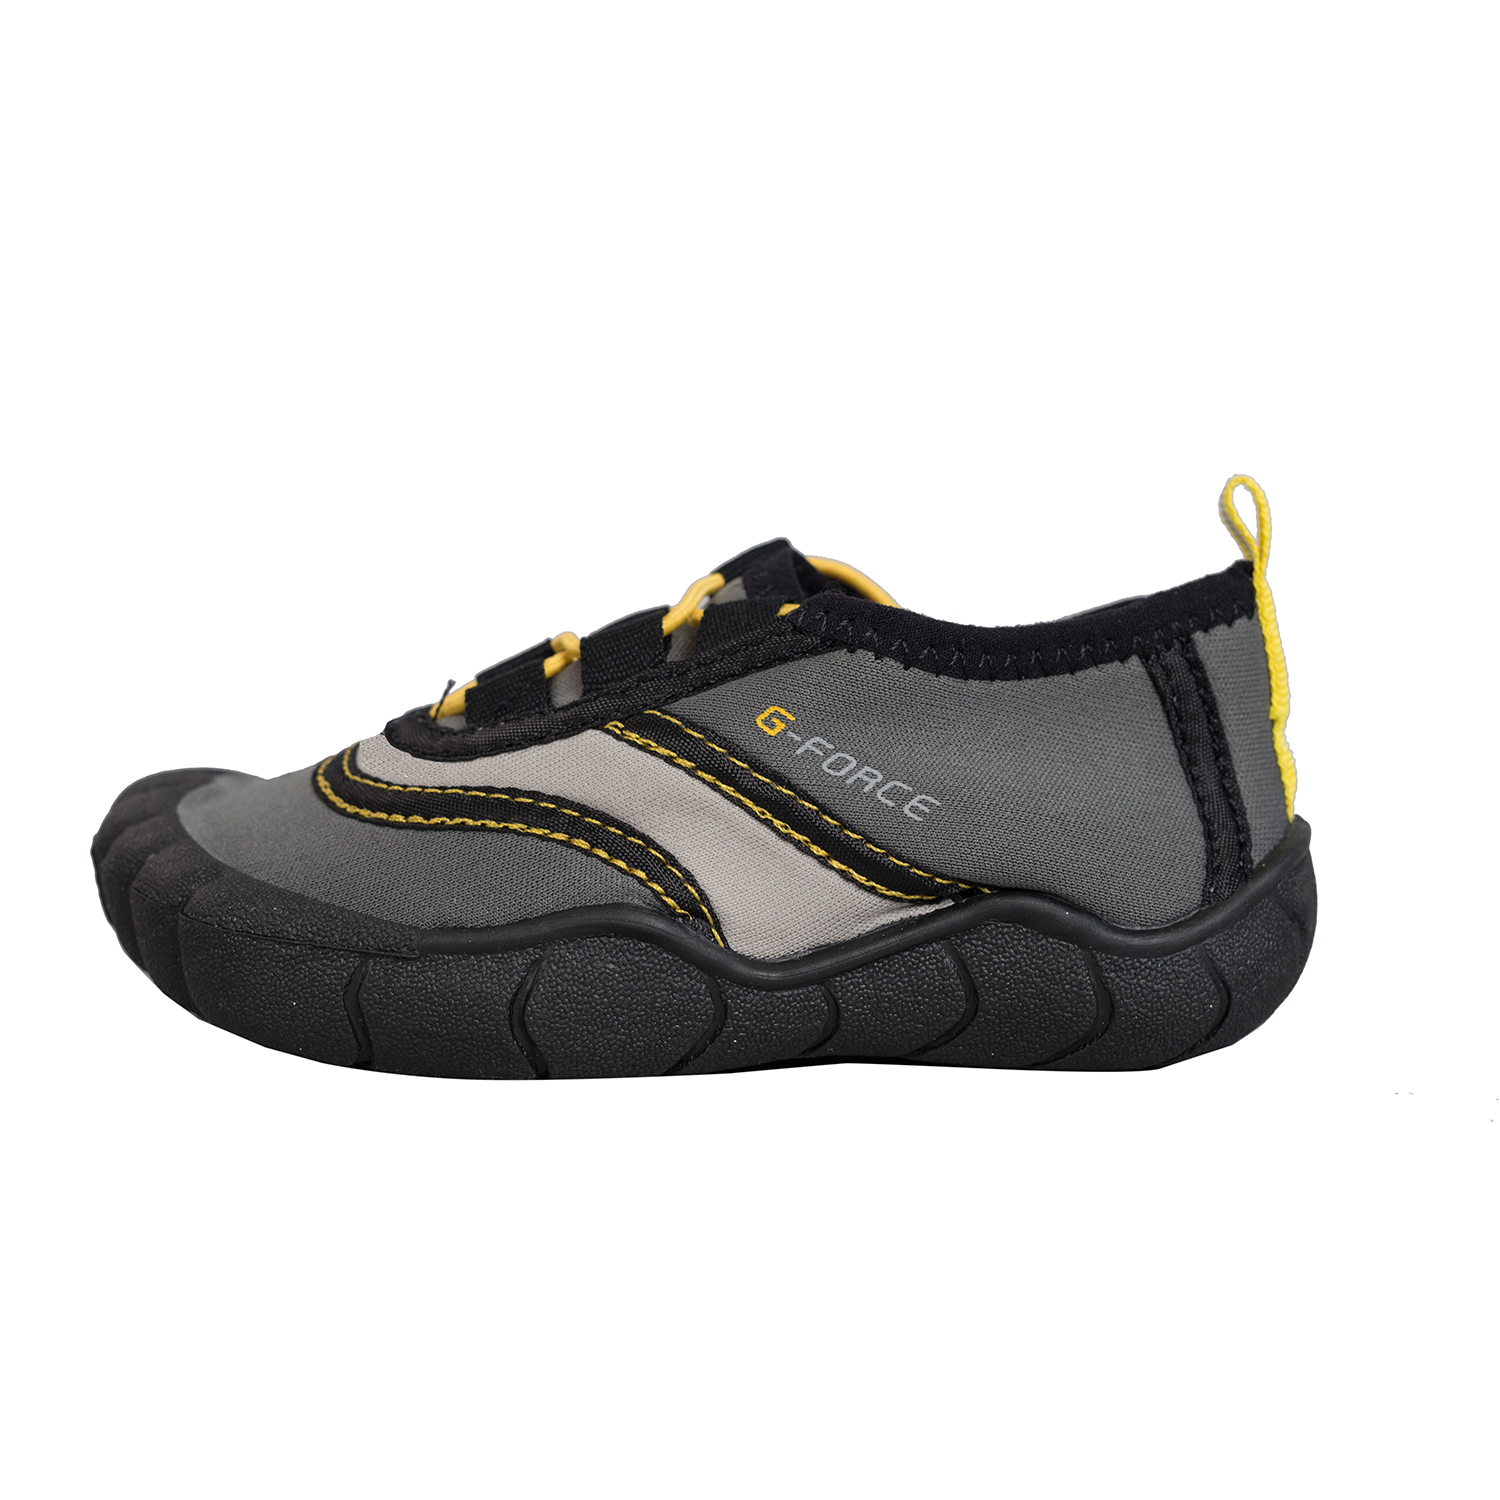 Black//Yellow Gul Junior Aqua Shoe Beach Shoes 2020